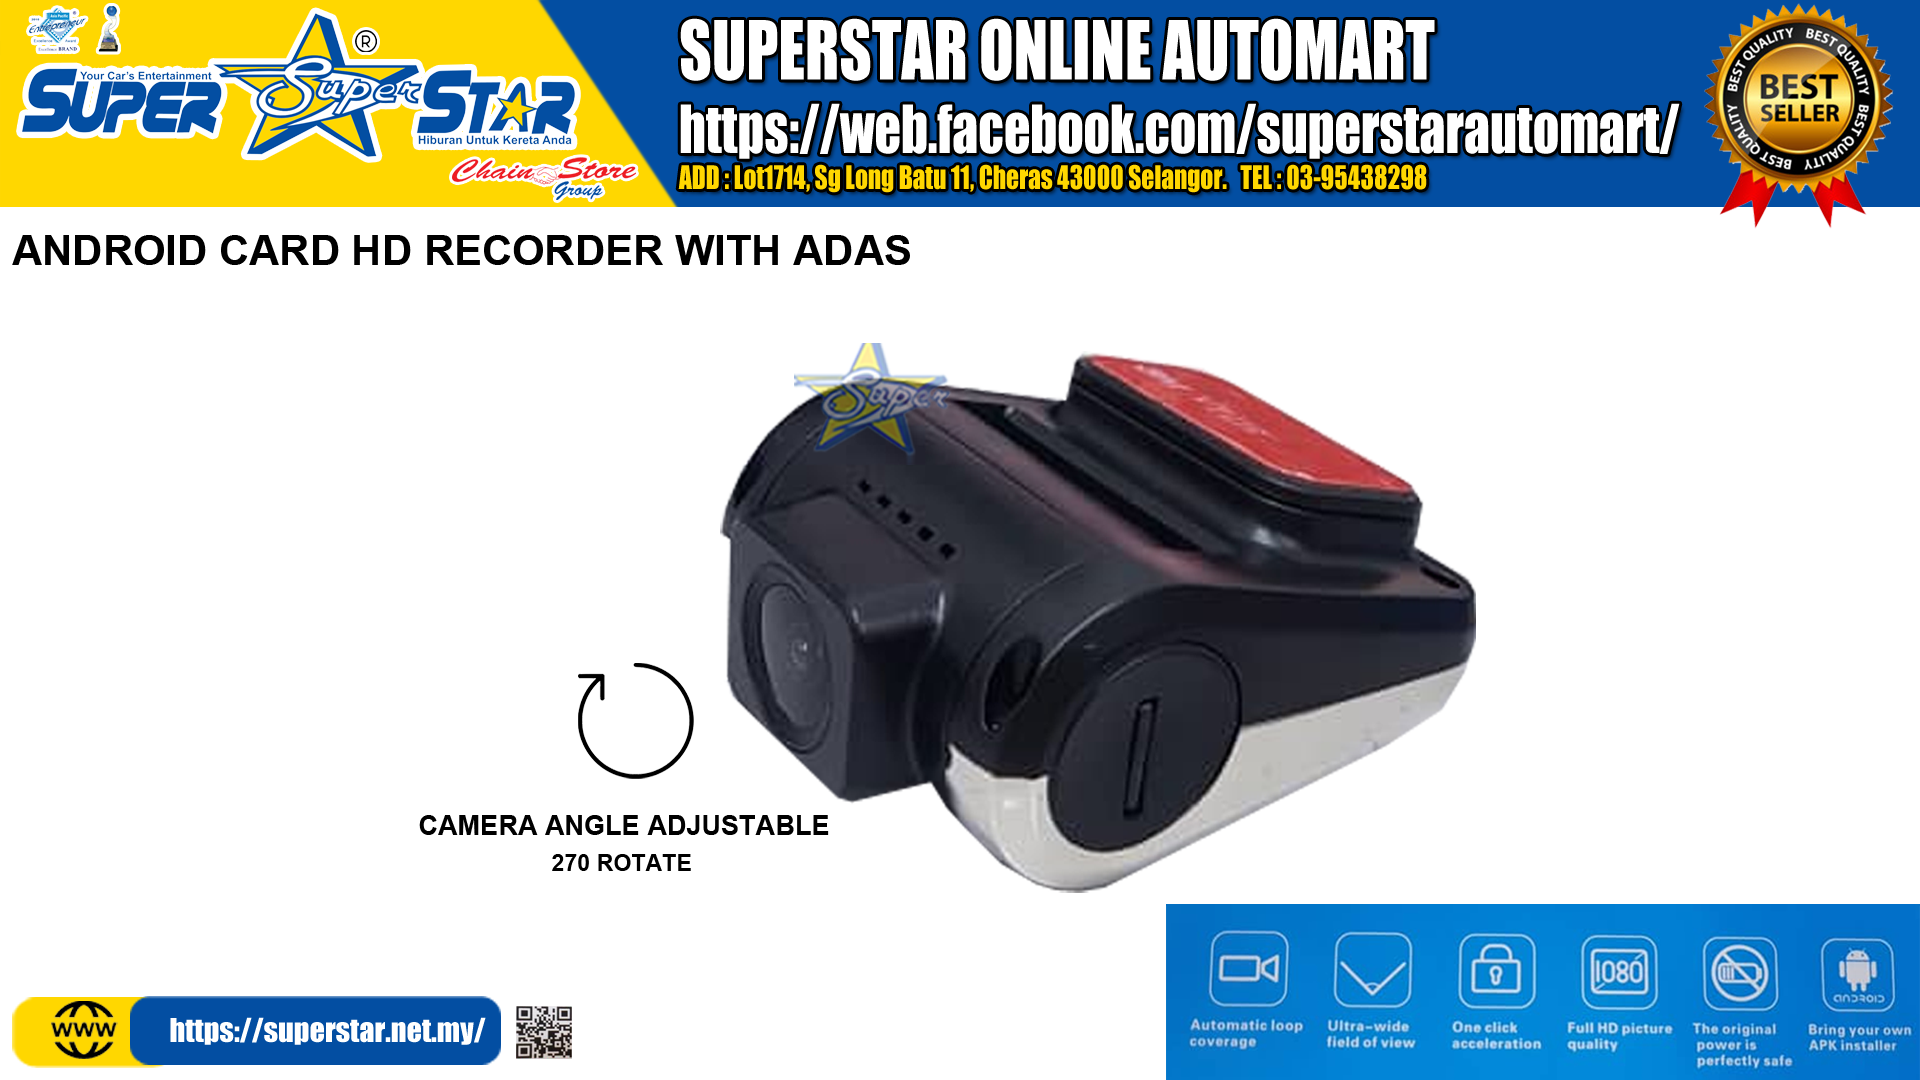 Usb Car Dvr Camera Driving Recorder Hd Video Recorder For Android 4.2 / 4.4 / 5.1.1/6.0.1/7.1 Dvd Gps Player Dvr Camera